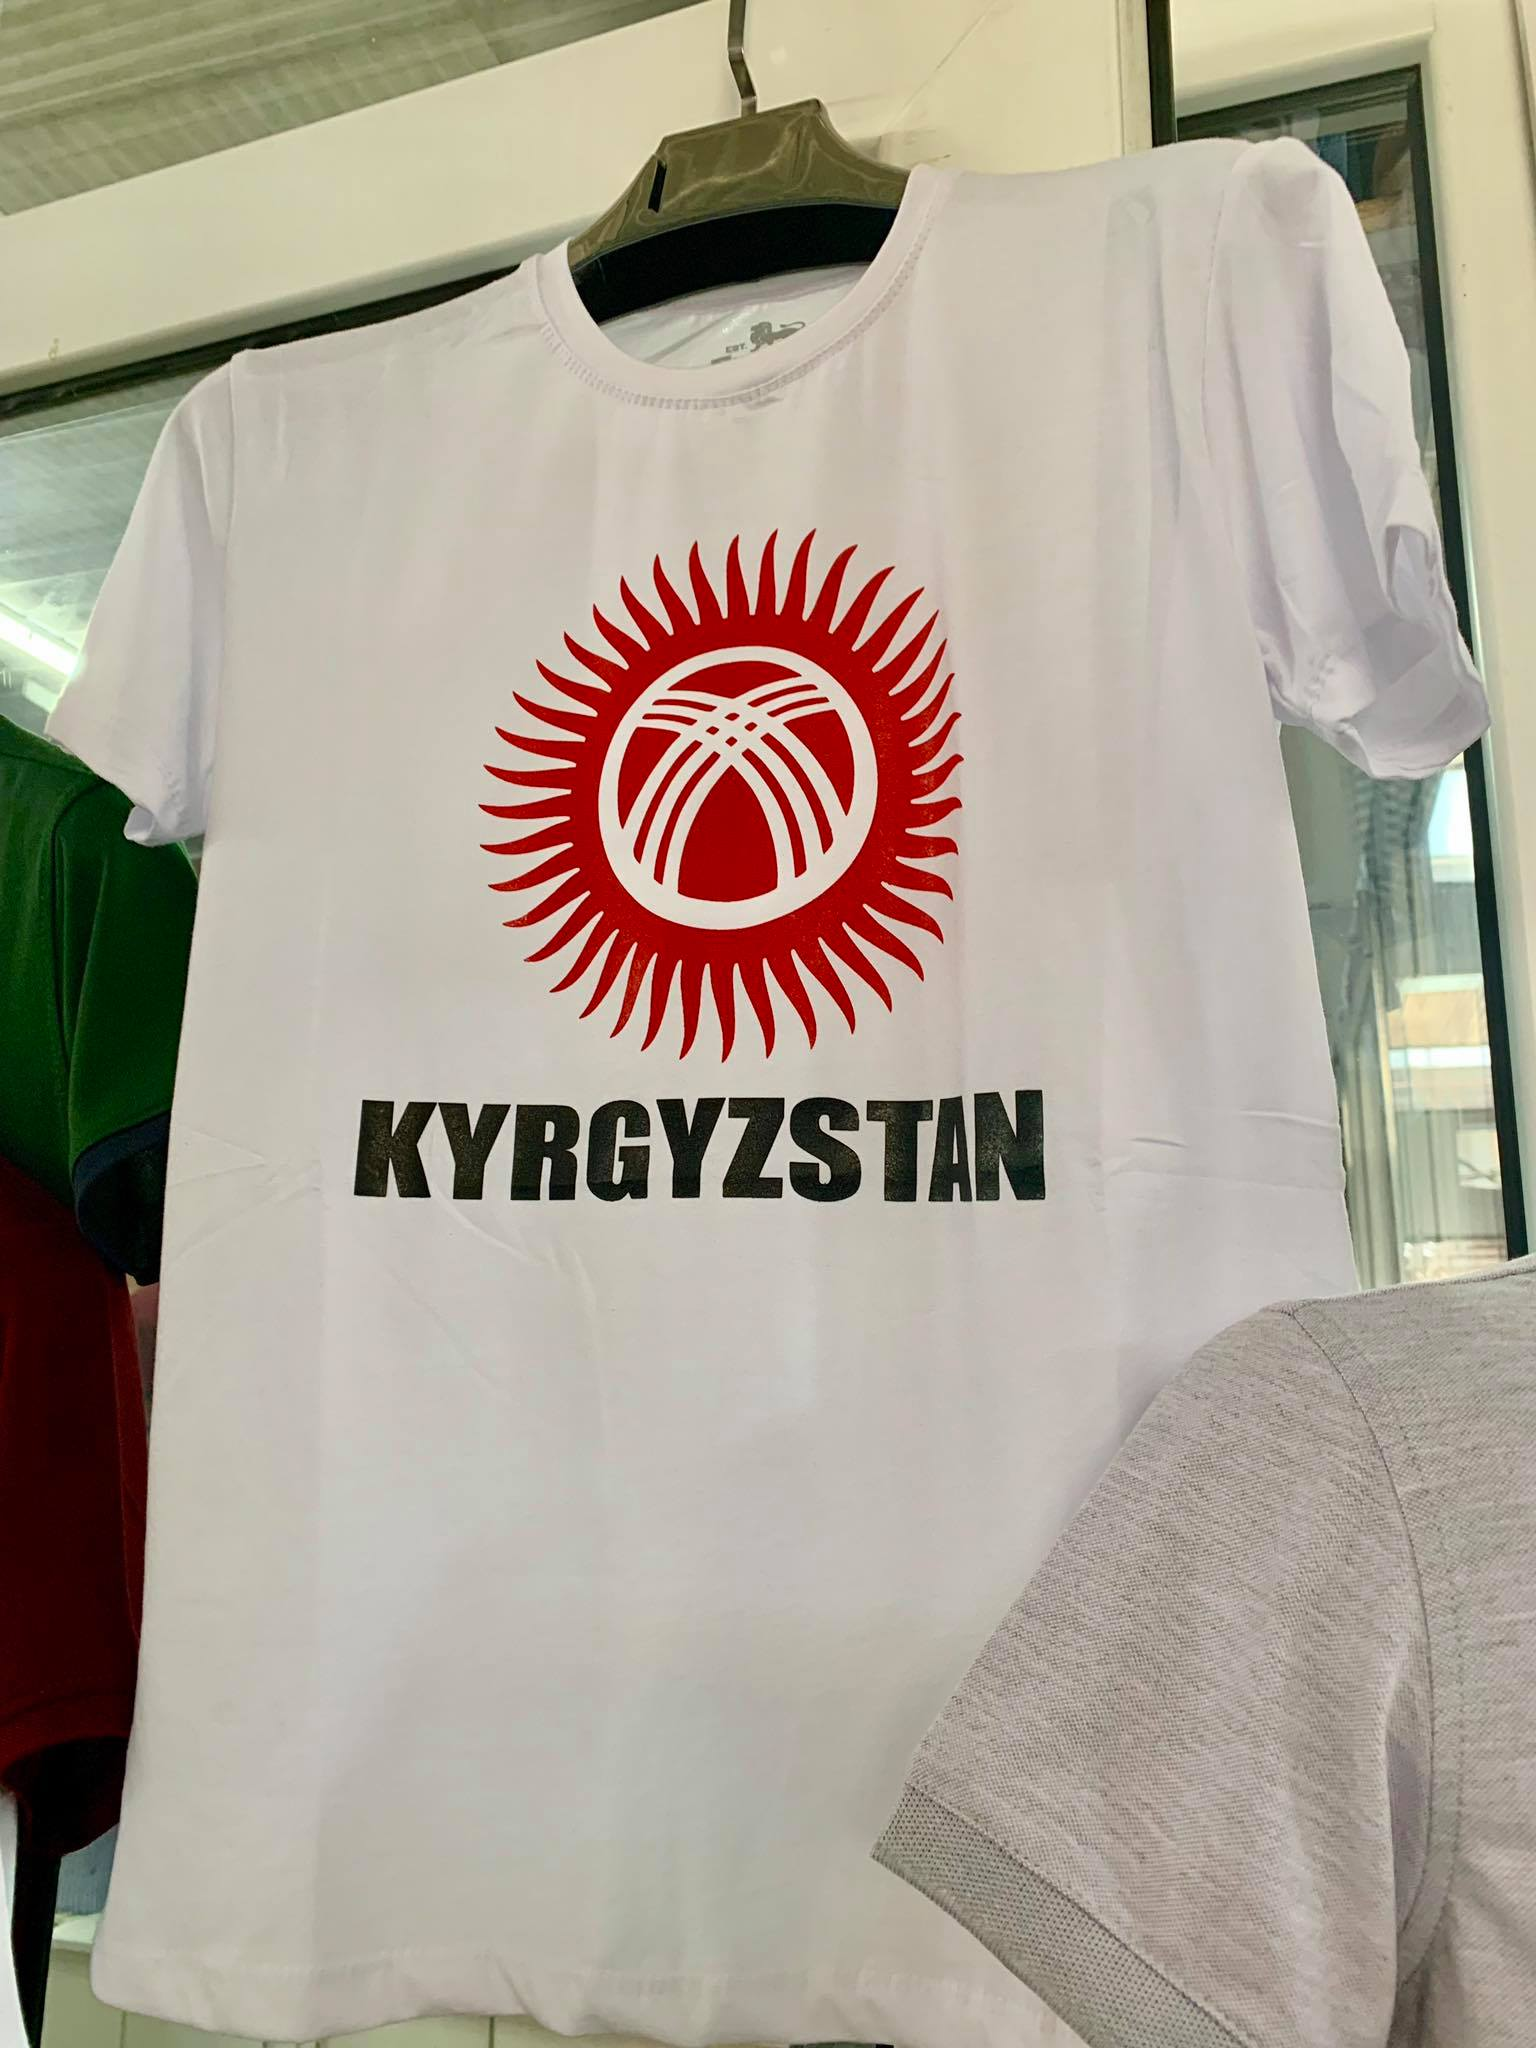 Kach Solo Travels in 2019 Exploring KYRGYZSTAN with Destination Pamir31.jpg